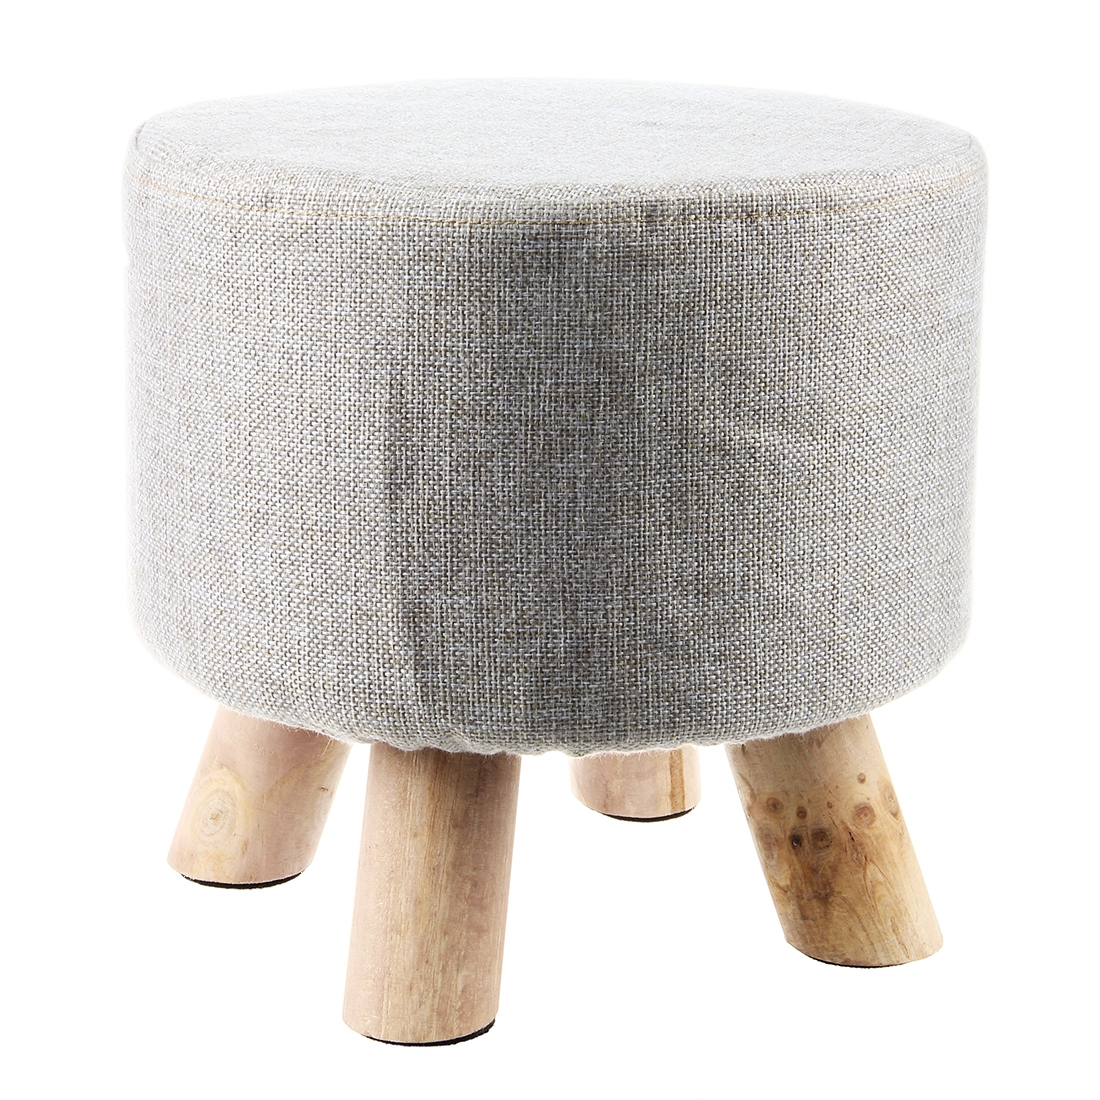 Online Get Cheap Round Footstool Aliexpress Alibaba Group With Cheap Footstools And Pouffes (Photo 6 of 15)